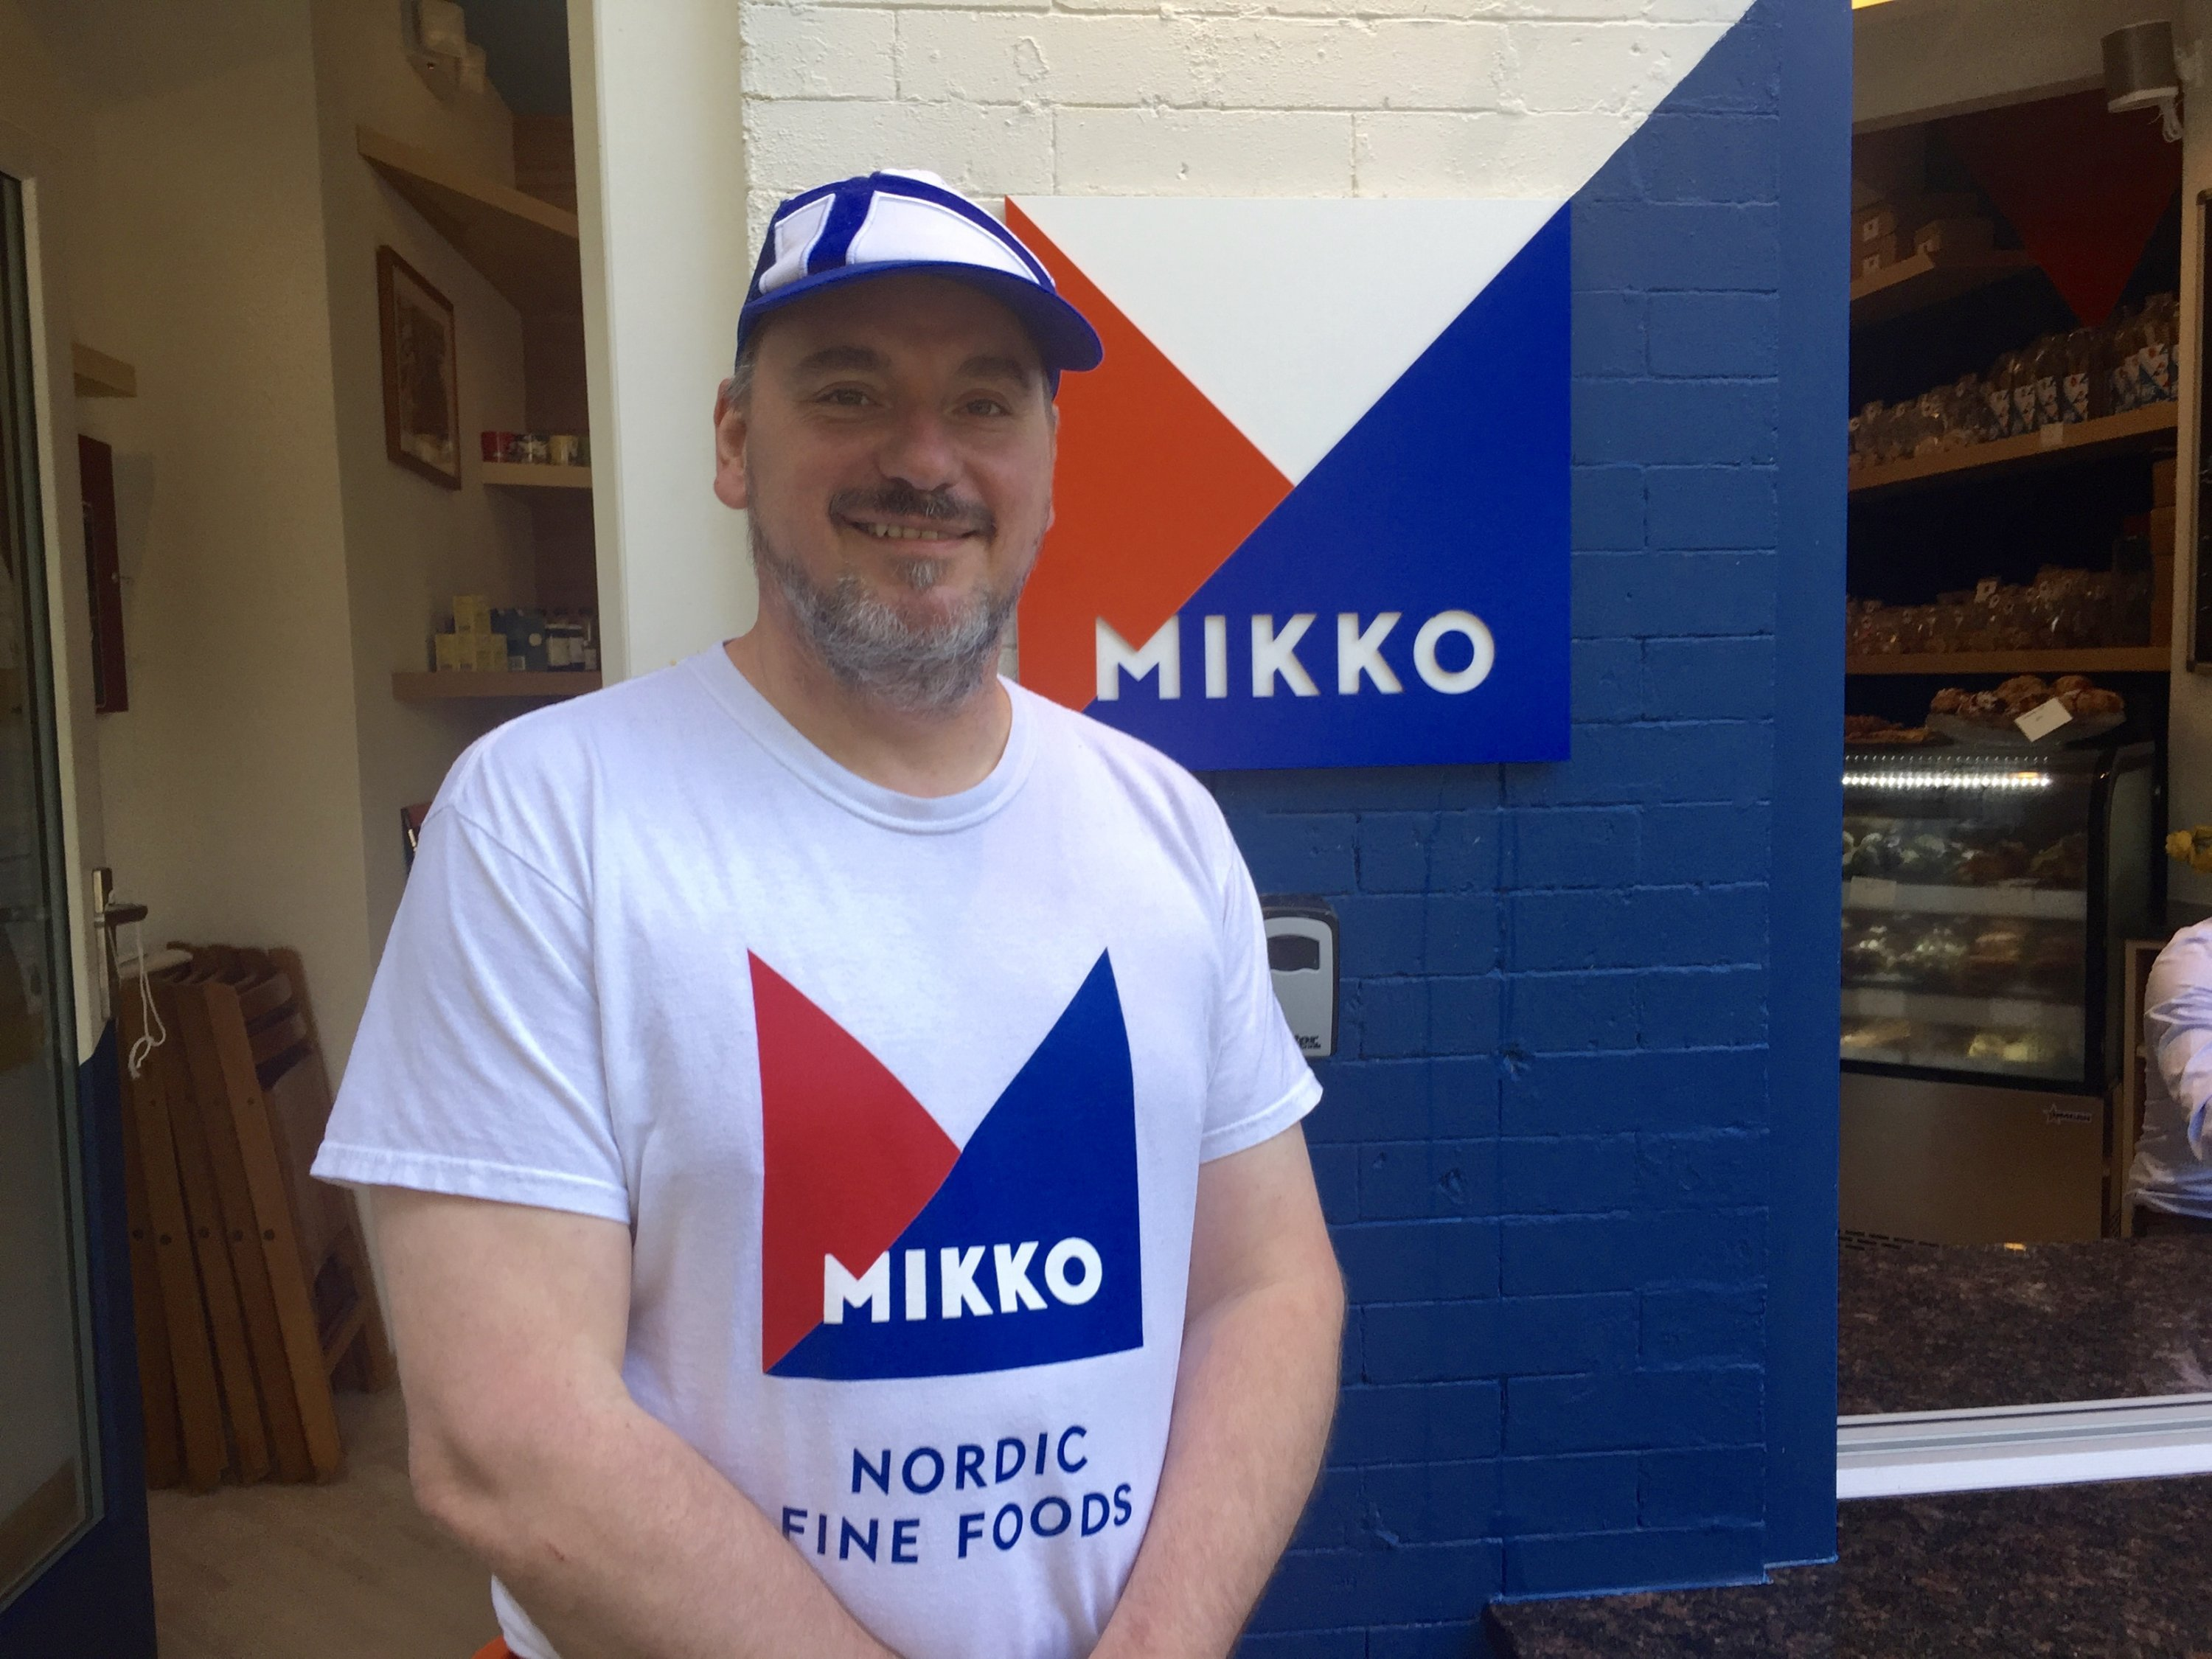 Chef Mikko Kosonen (who is wearing a hat in the pattern of the flag of Finland) stands in front of his new restaurant, Mikko. Photograph by Helen Carefoot.